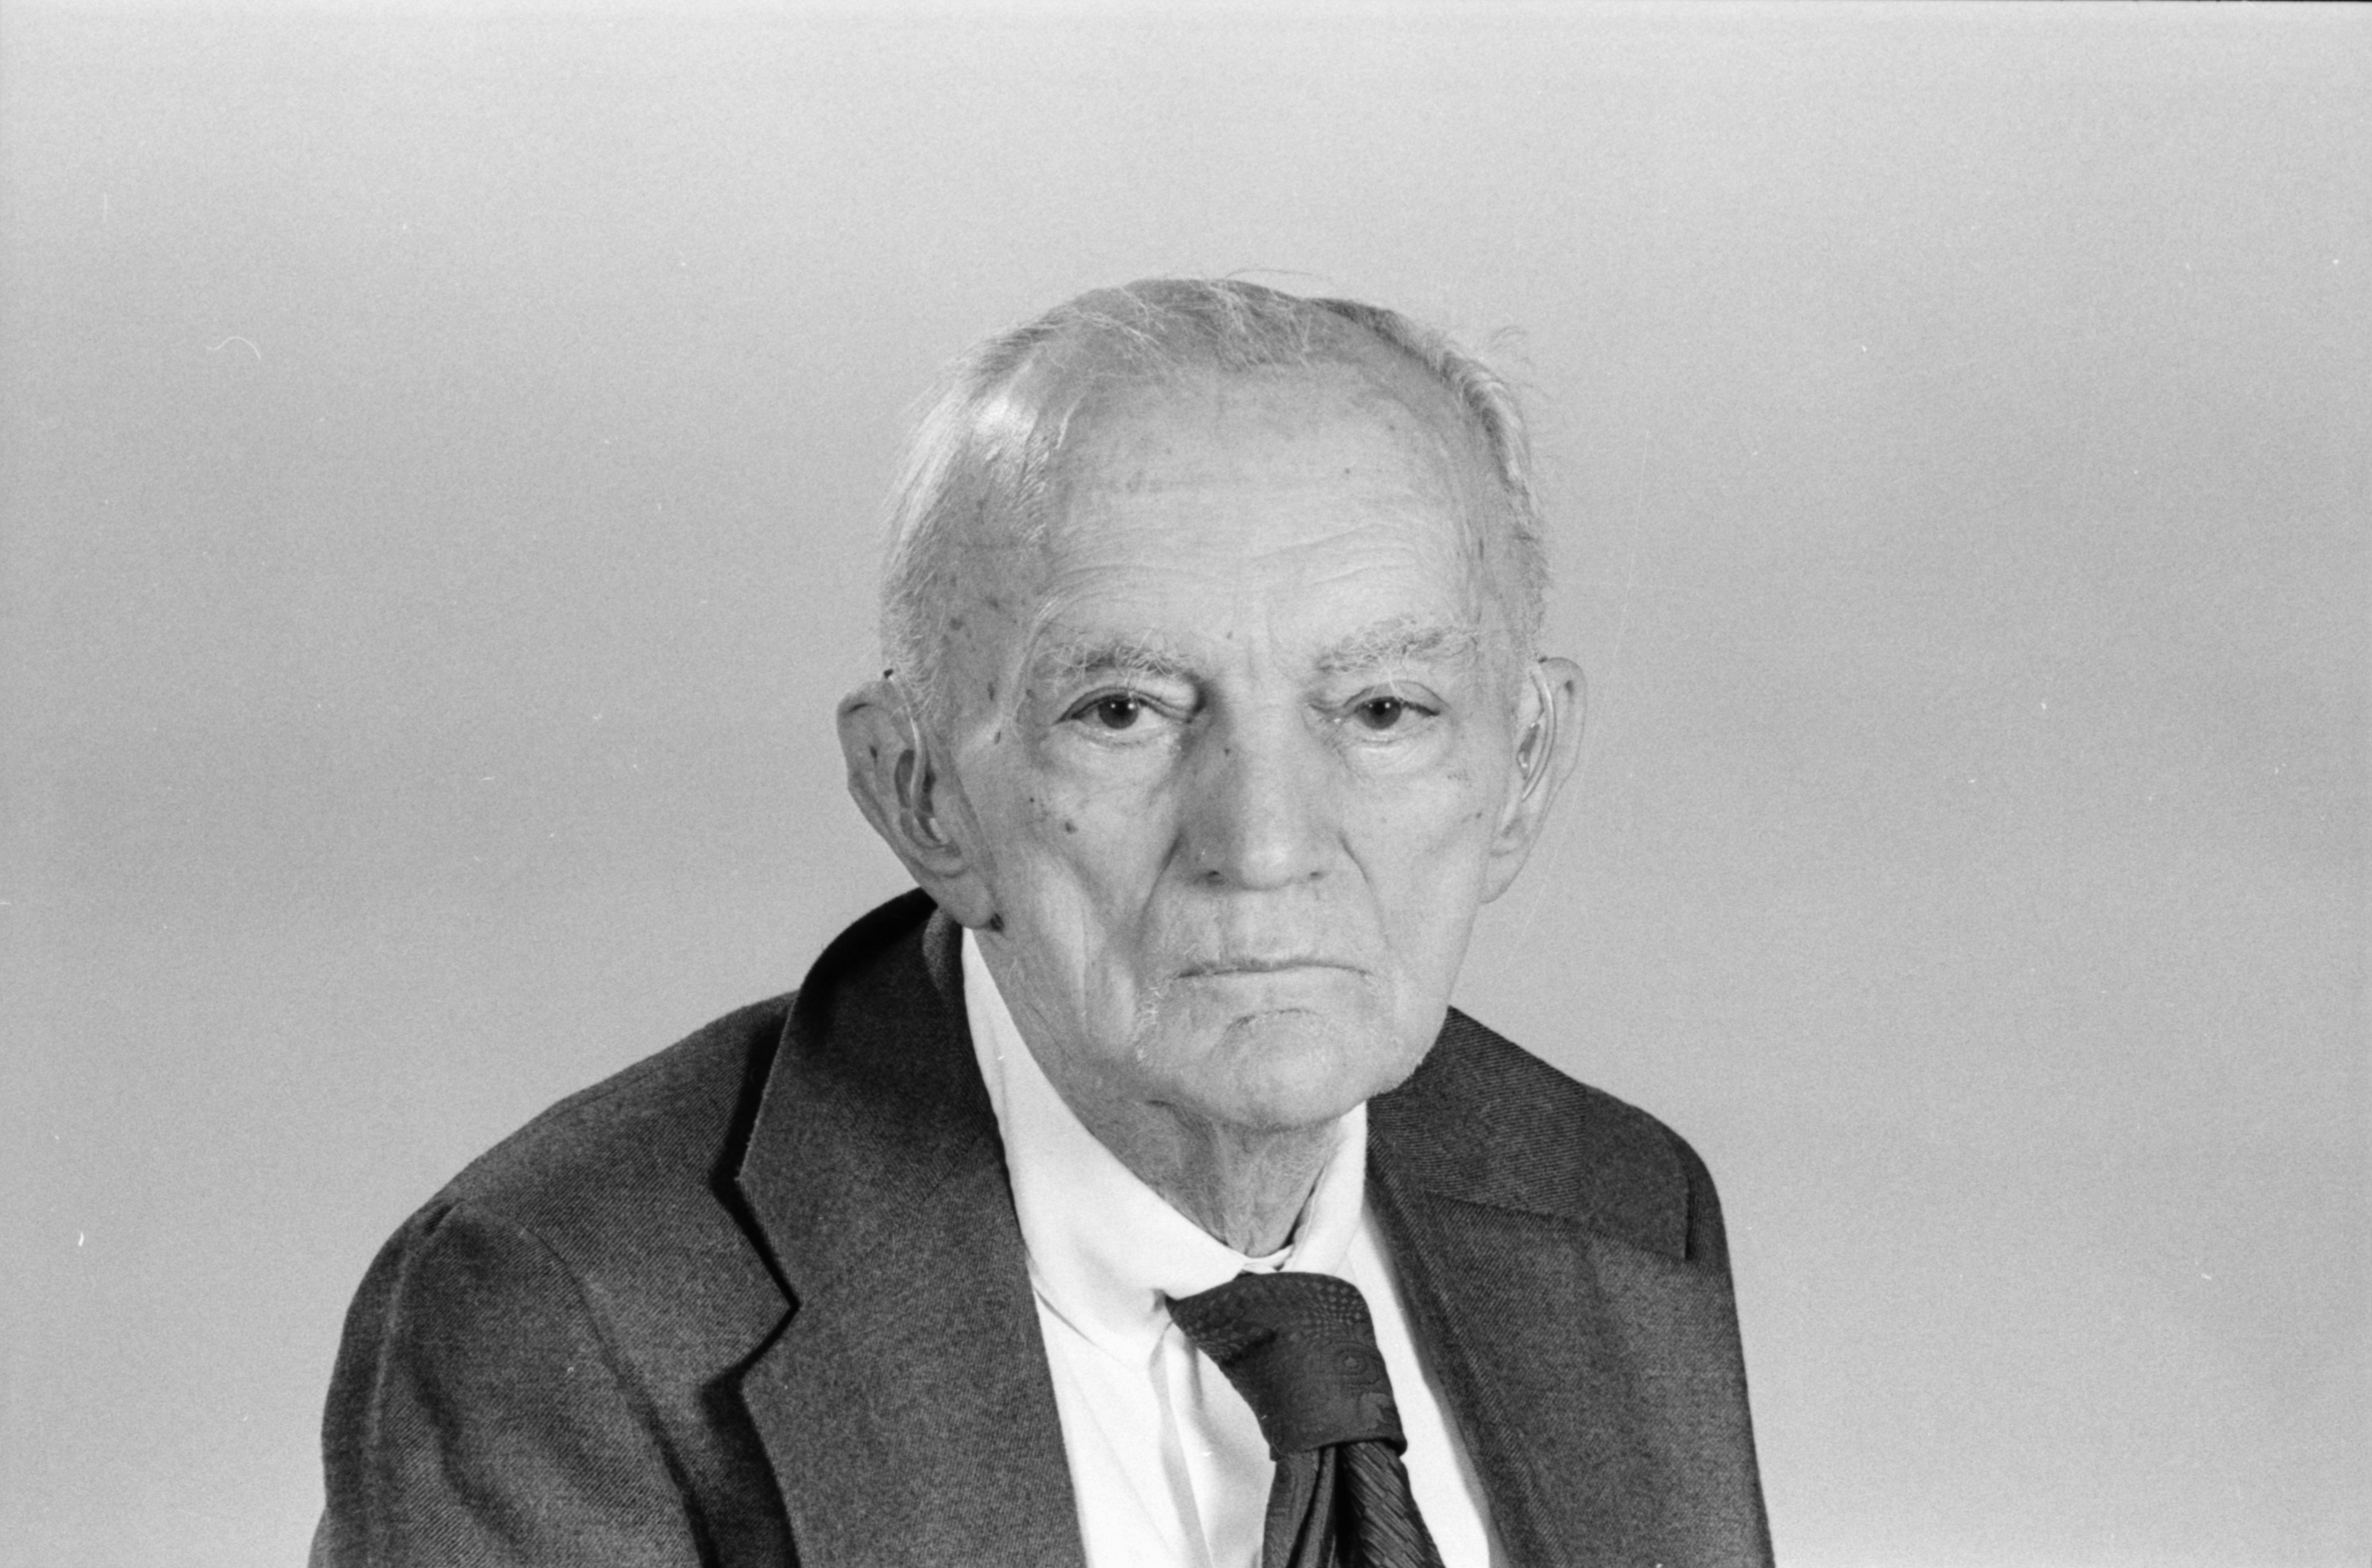 Portrait of Preston W. Slosson, October 1977 image